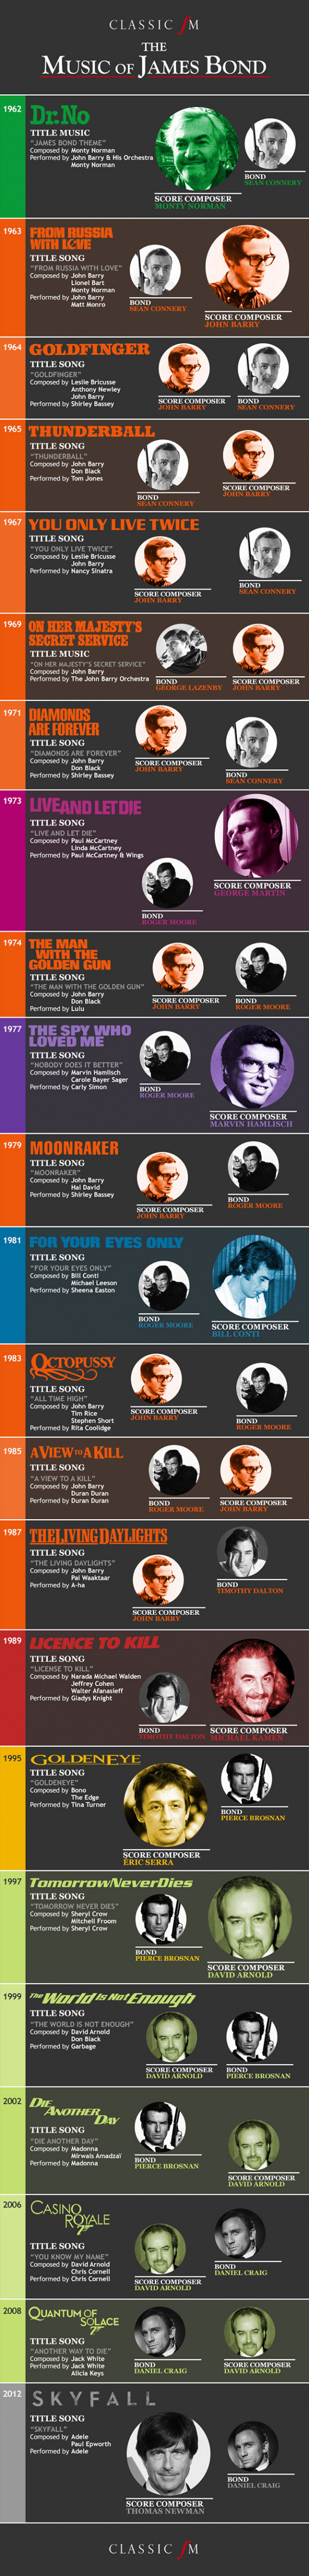 The Music of James Bond Infographic